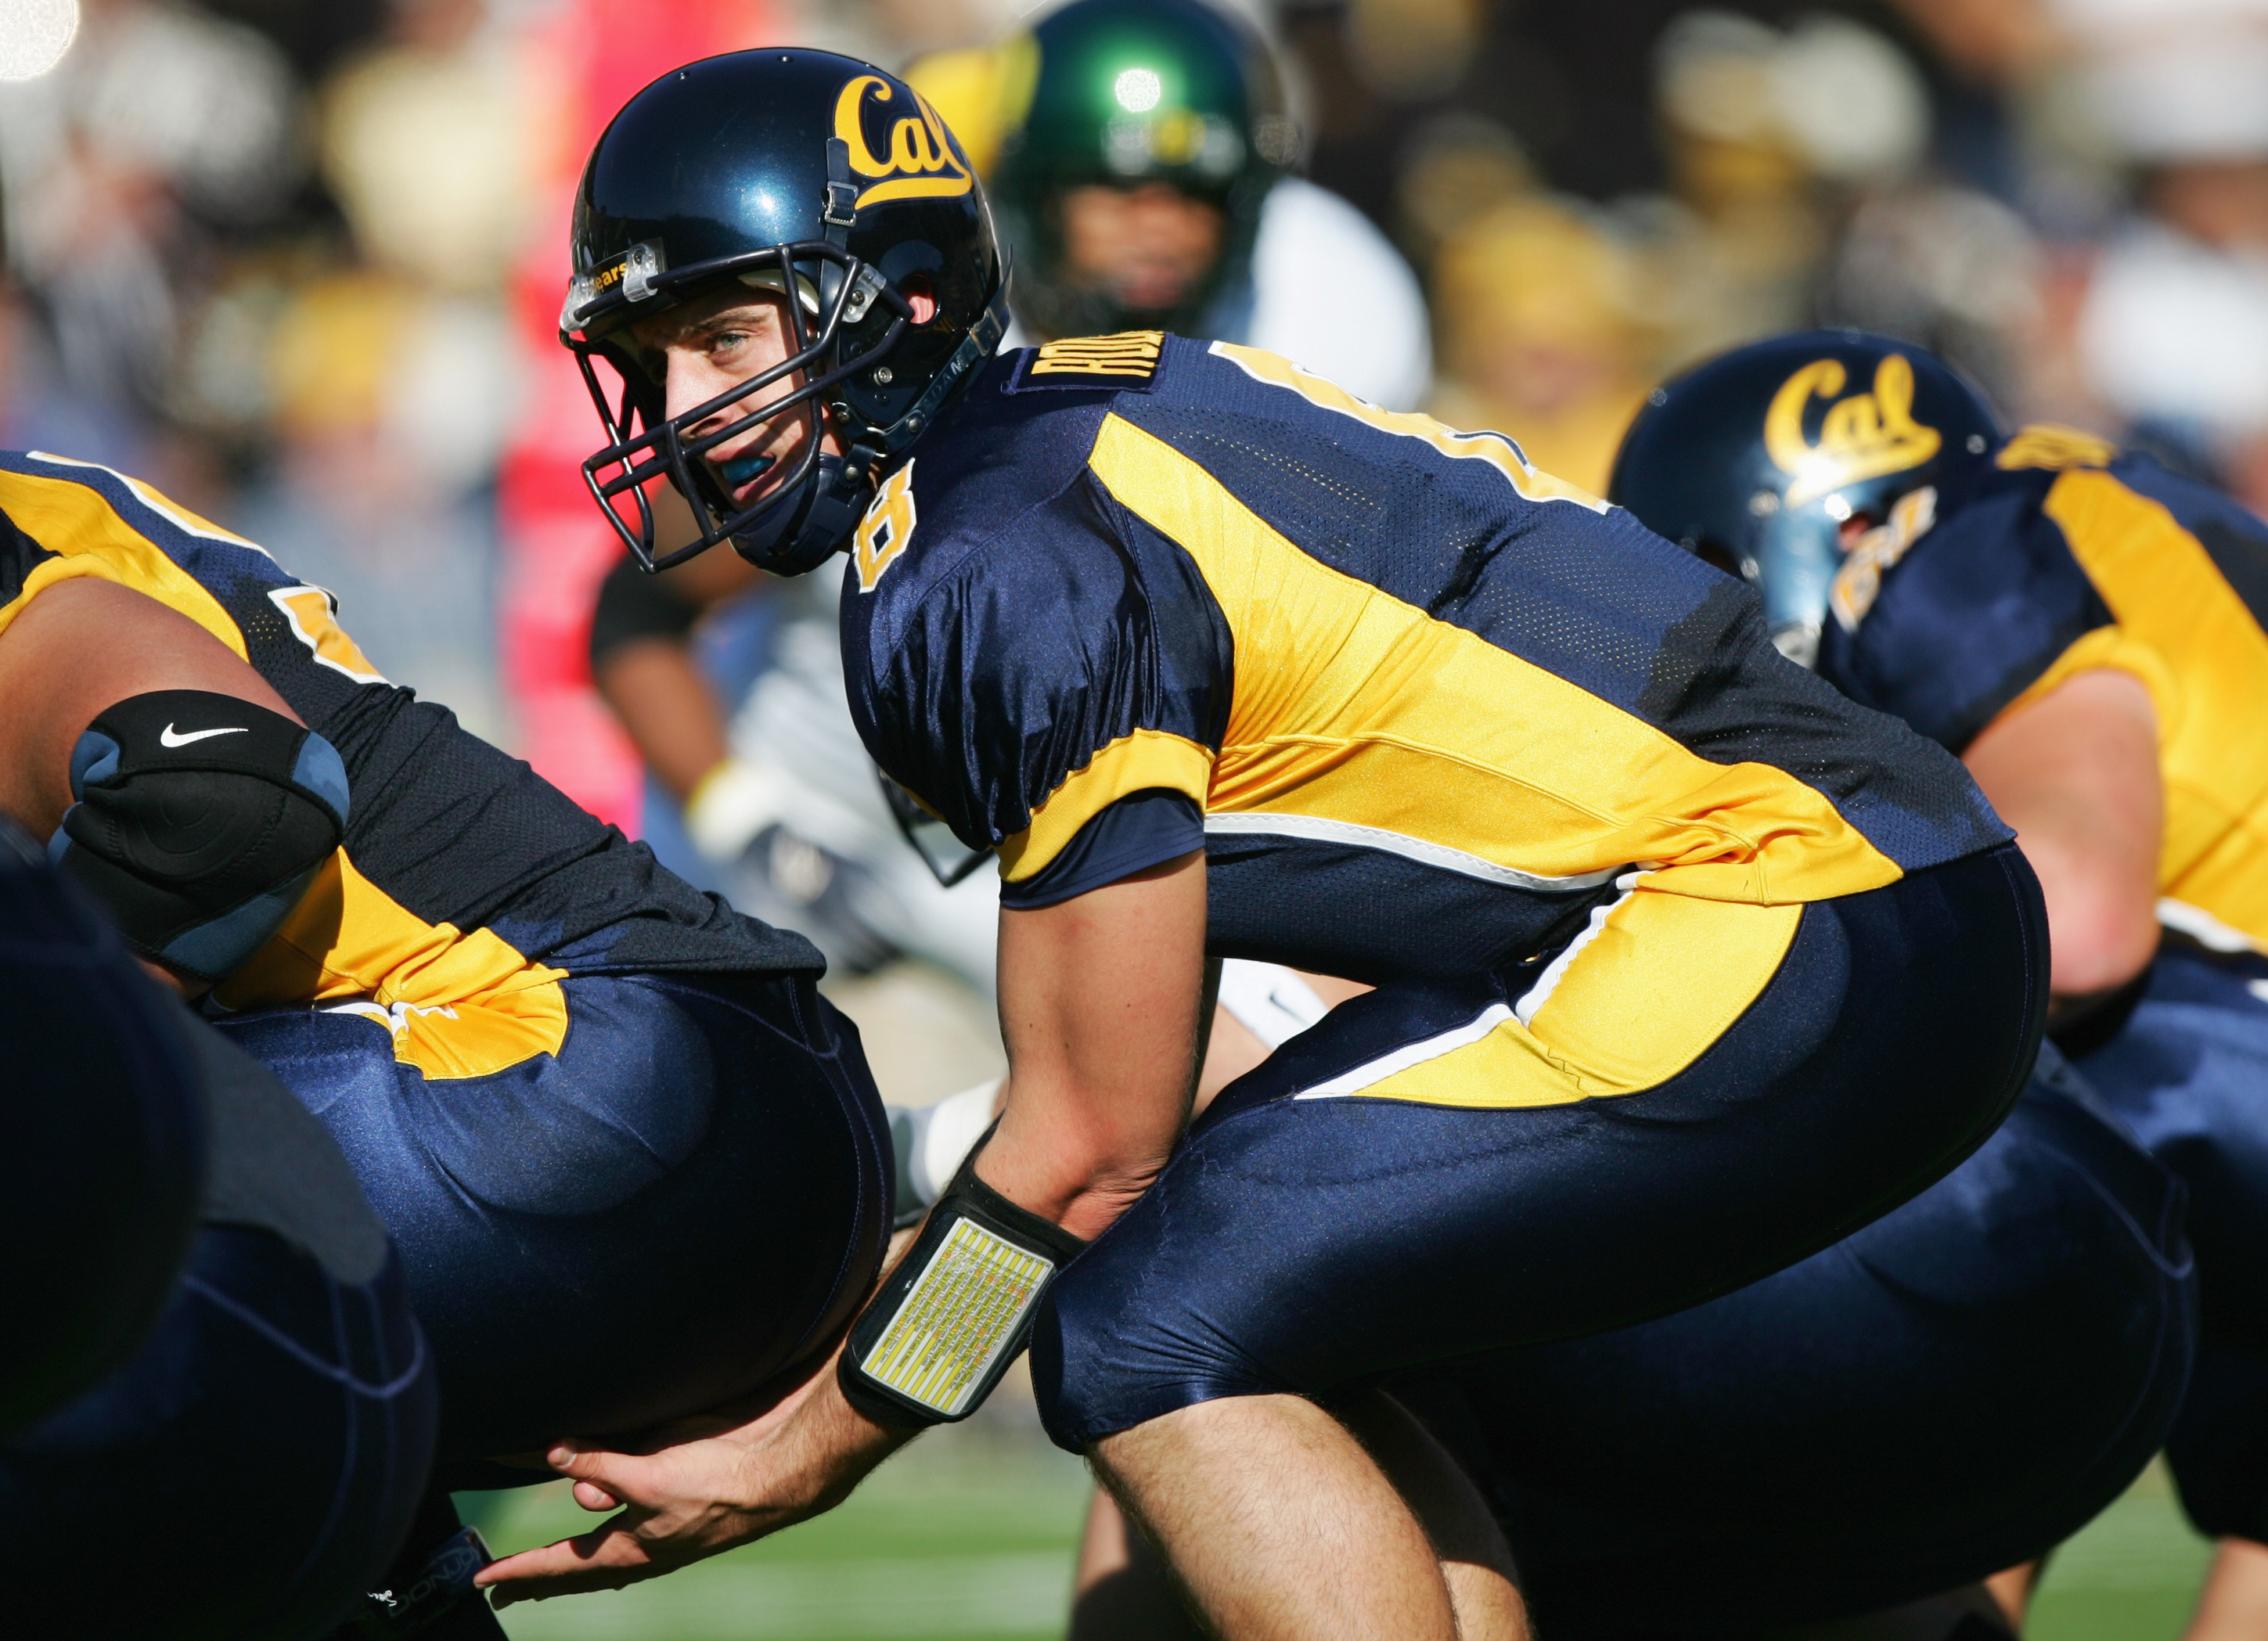 BERKELEY, CA - NOVEMBER 6:  Aaron Rodgers #8 of the California Golden Bears lines up under center during the game against the Oregon Ducks at Memorial Stadium on November 6, 2004 in Berkeley, California. The Bears defeated the Ducks 28-27.  (Photo by Jed